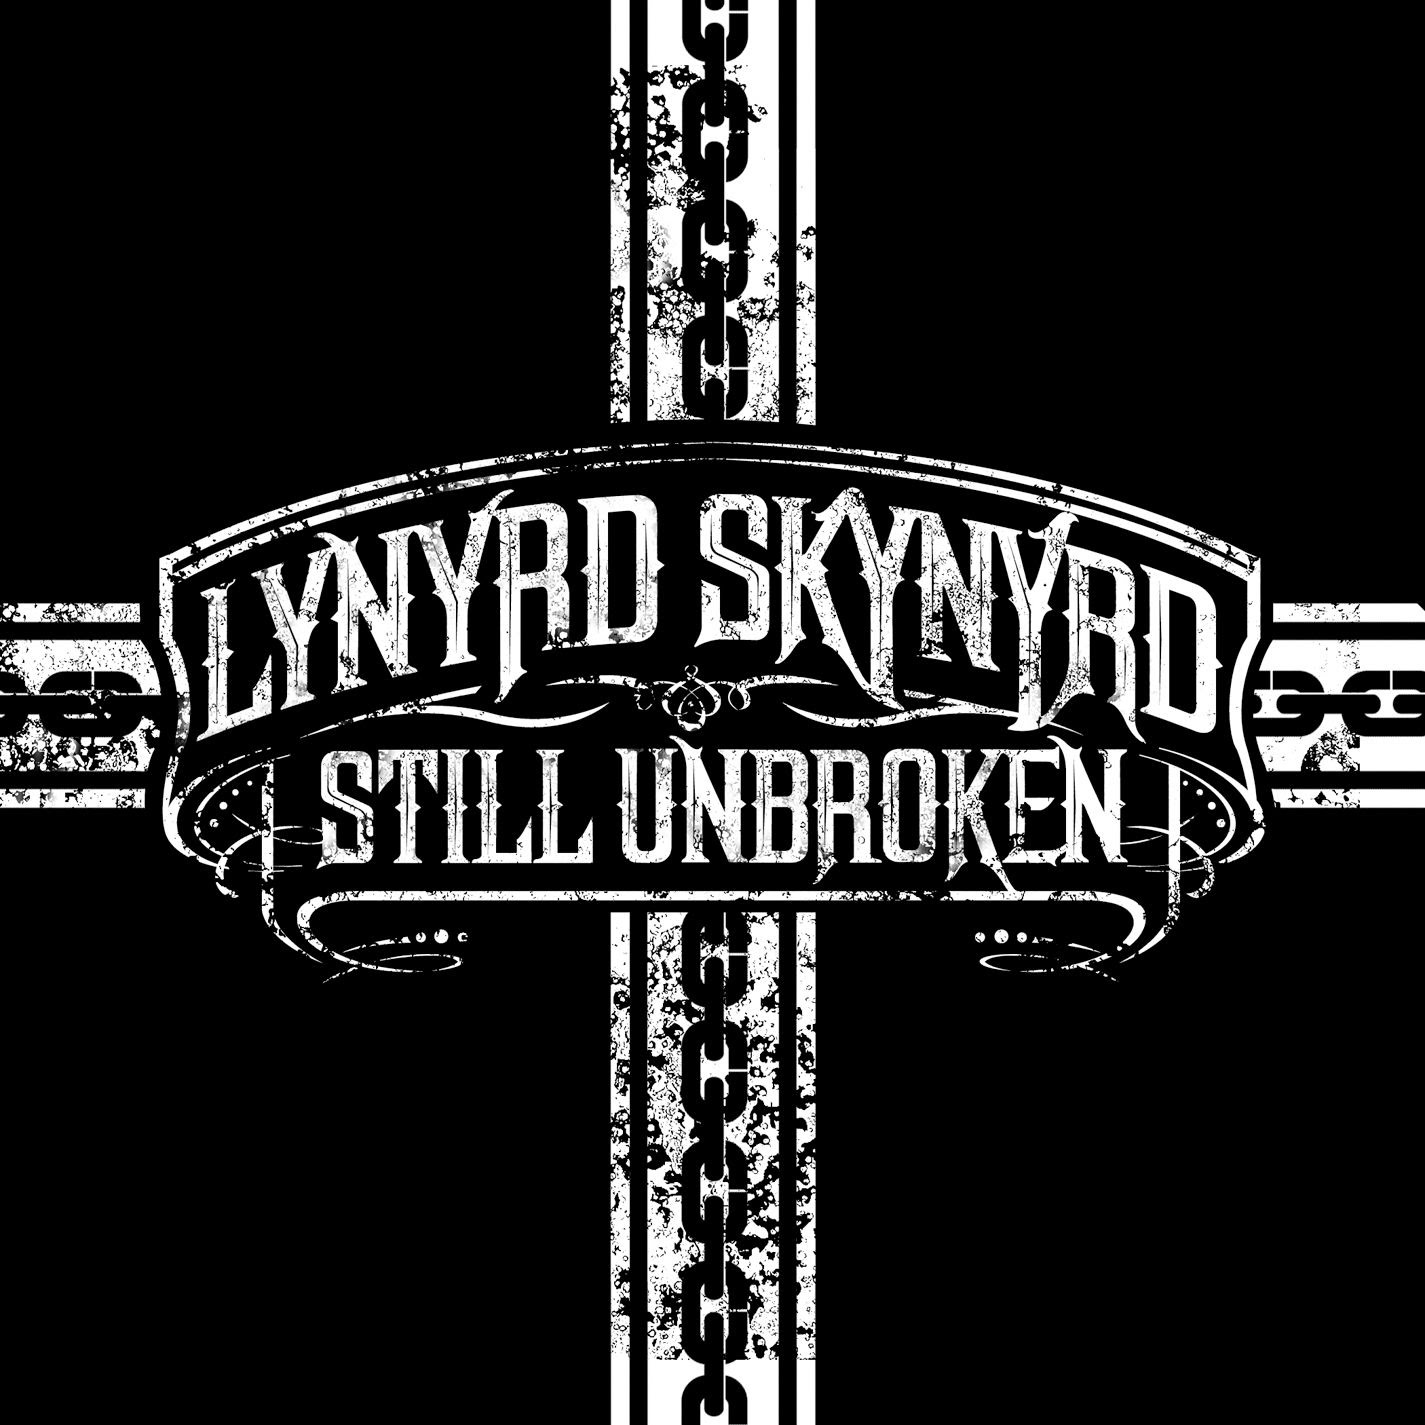 Lynyrd Skynyrd still unbroken poker songs